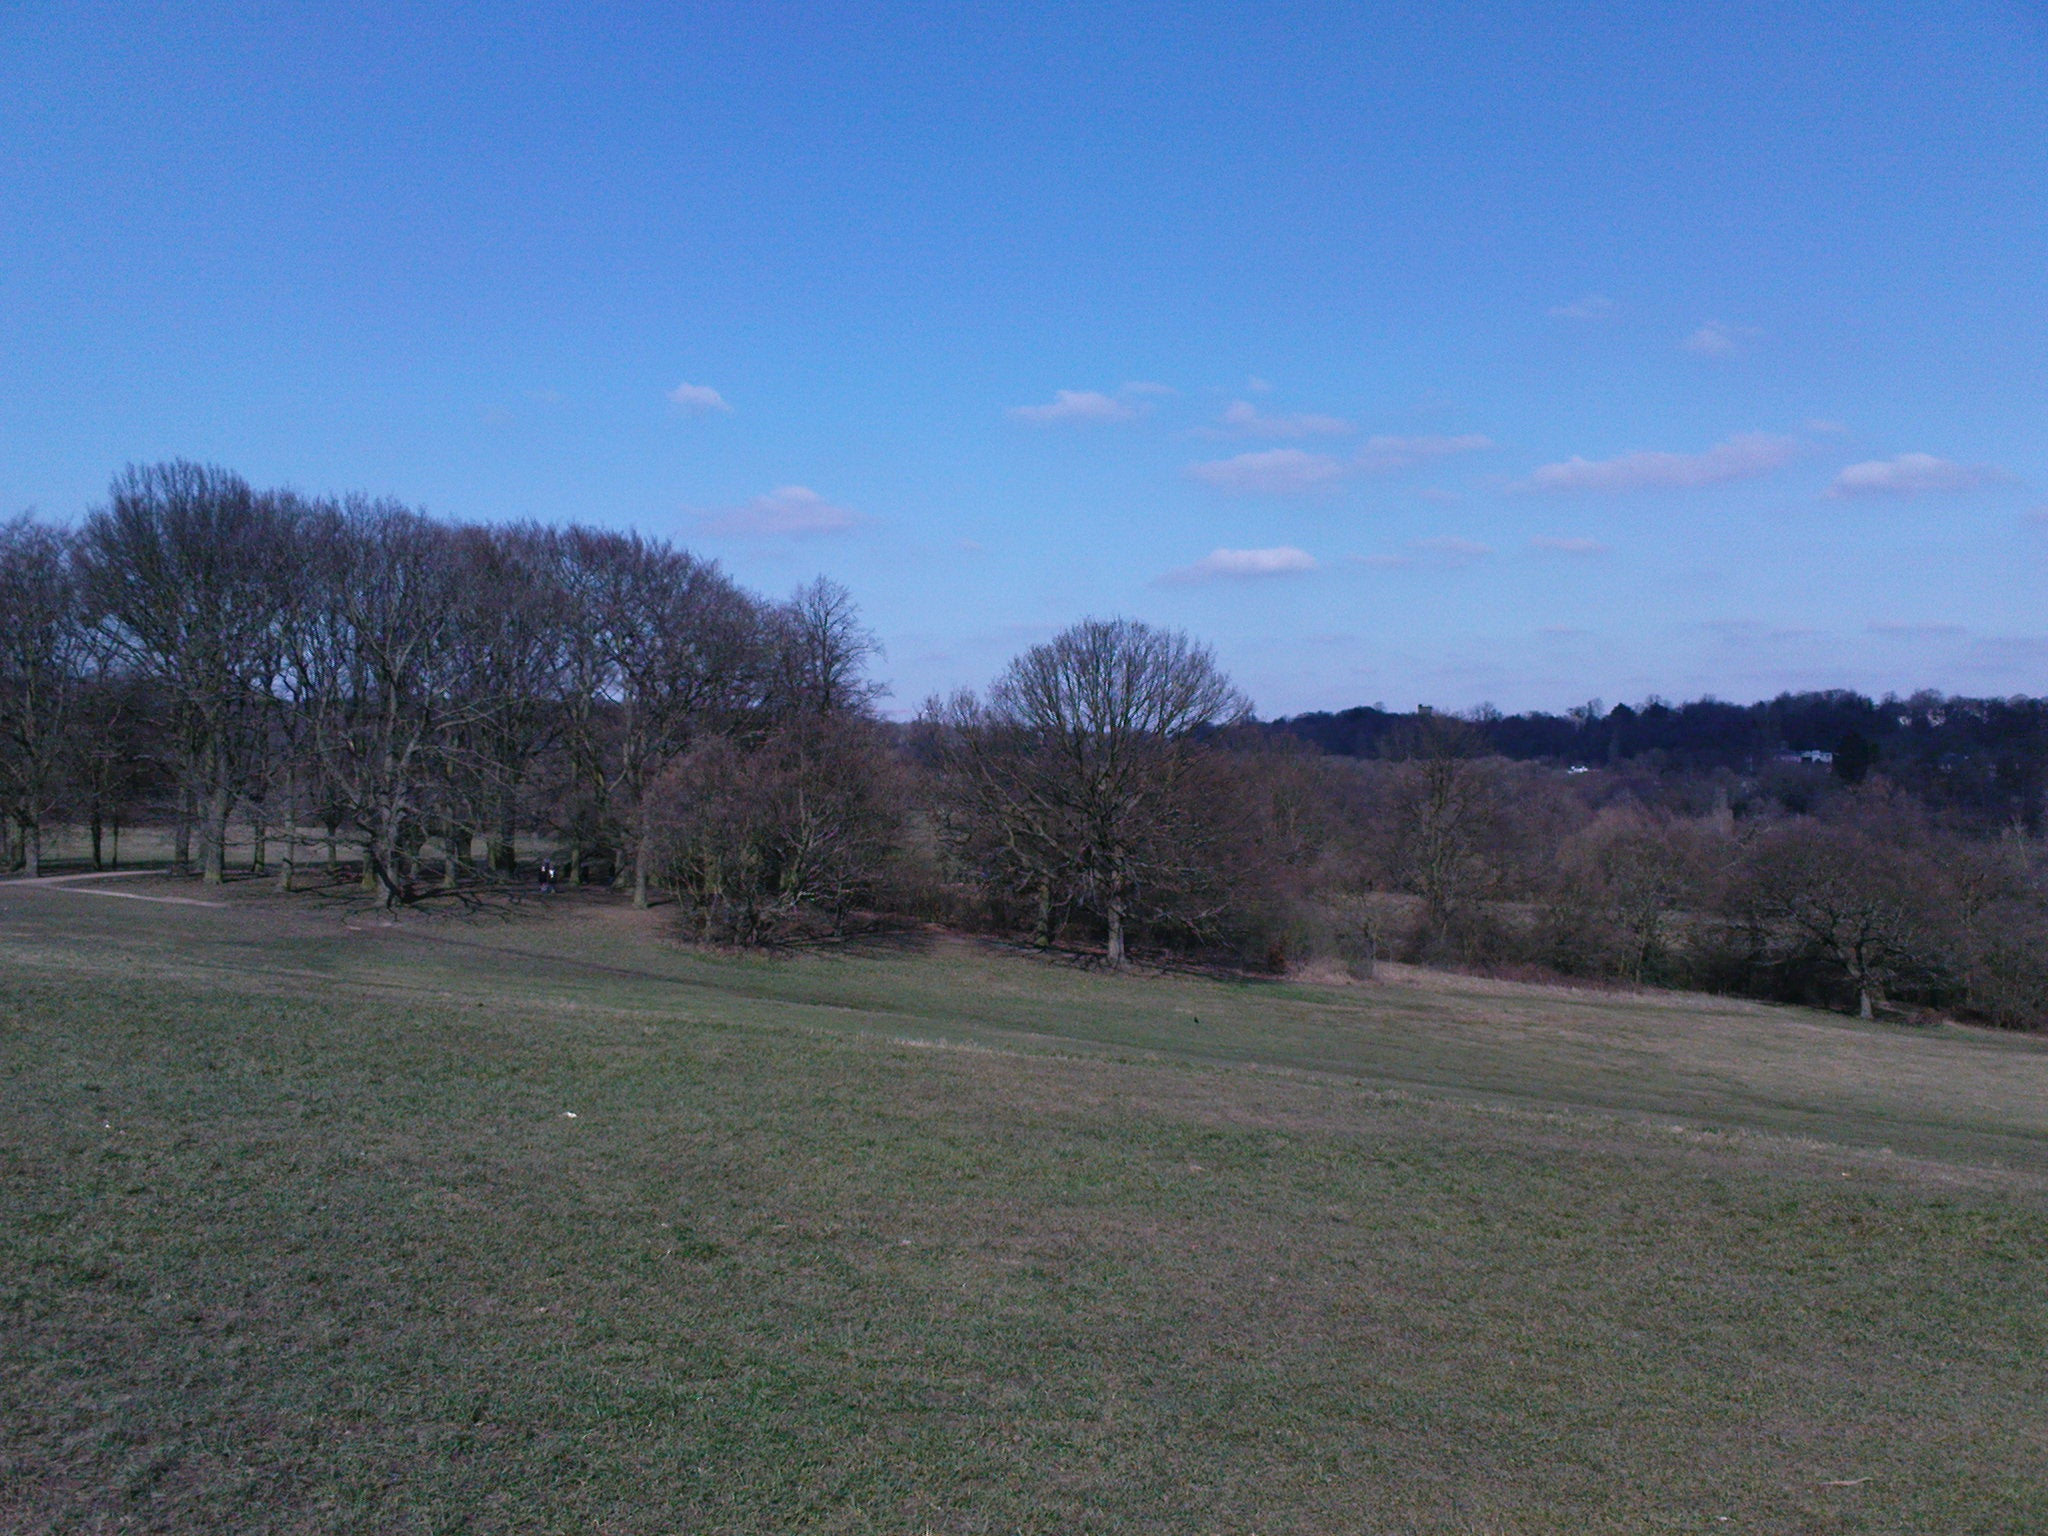 Llanura en Parque de Hampstead Heath